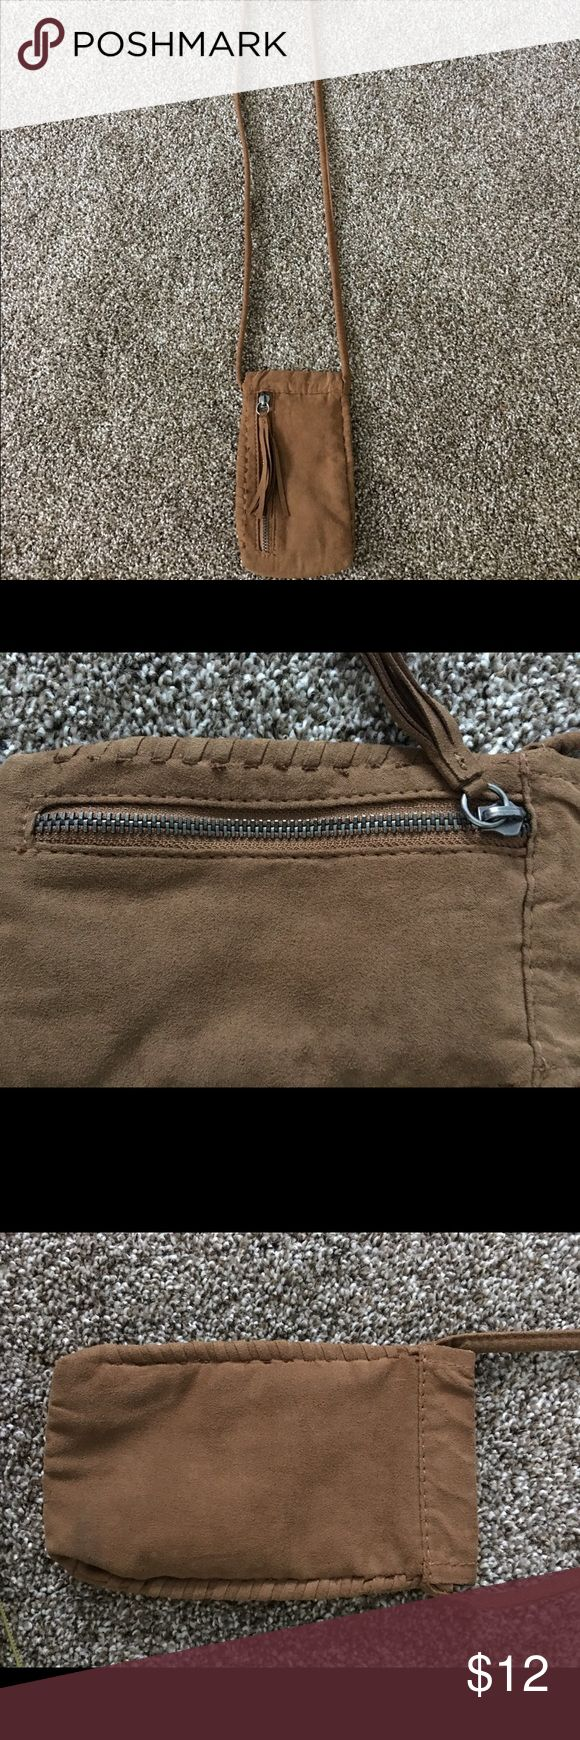 Brown Crossbody Mini Purse Selling this Crossbody purse from American Eagle. 8 inches in length so it's very small. I just used it to store my phone since it's about the same size. Brand new condition. Has a zipper on the outside. American Eagle Outfitters Bags Crossbody Bags